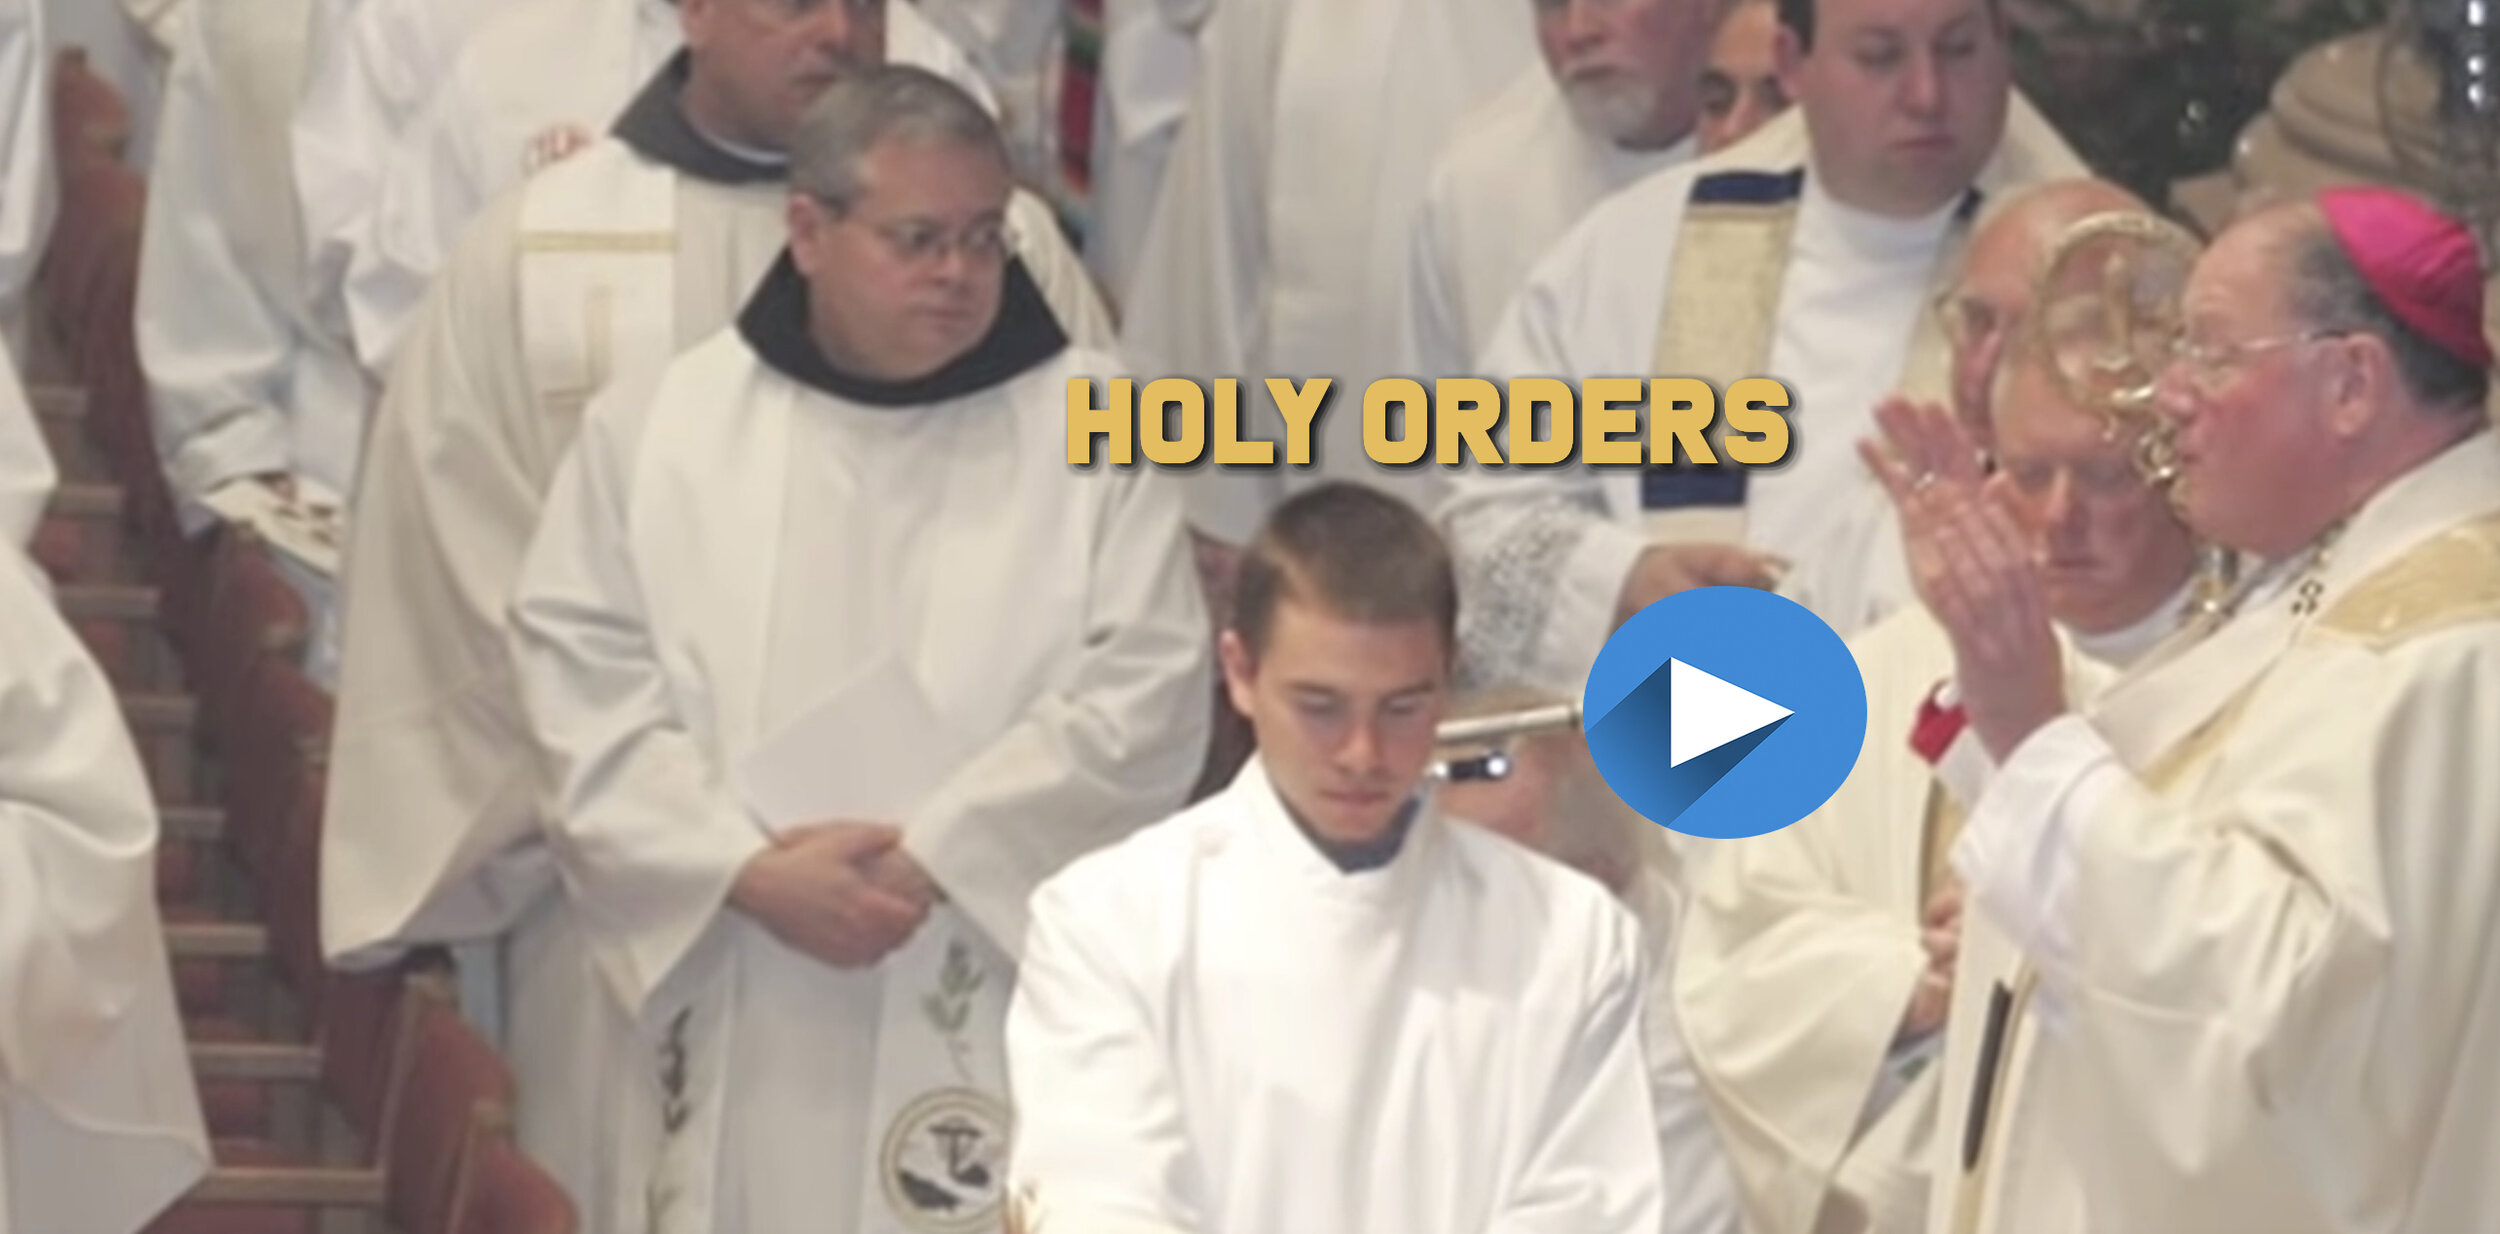 HOLY ORDERS VIDEO COVER 2 with arrow .jpg